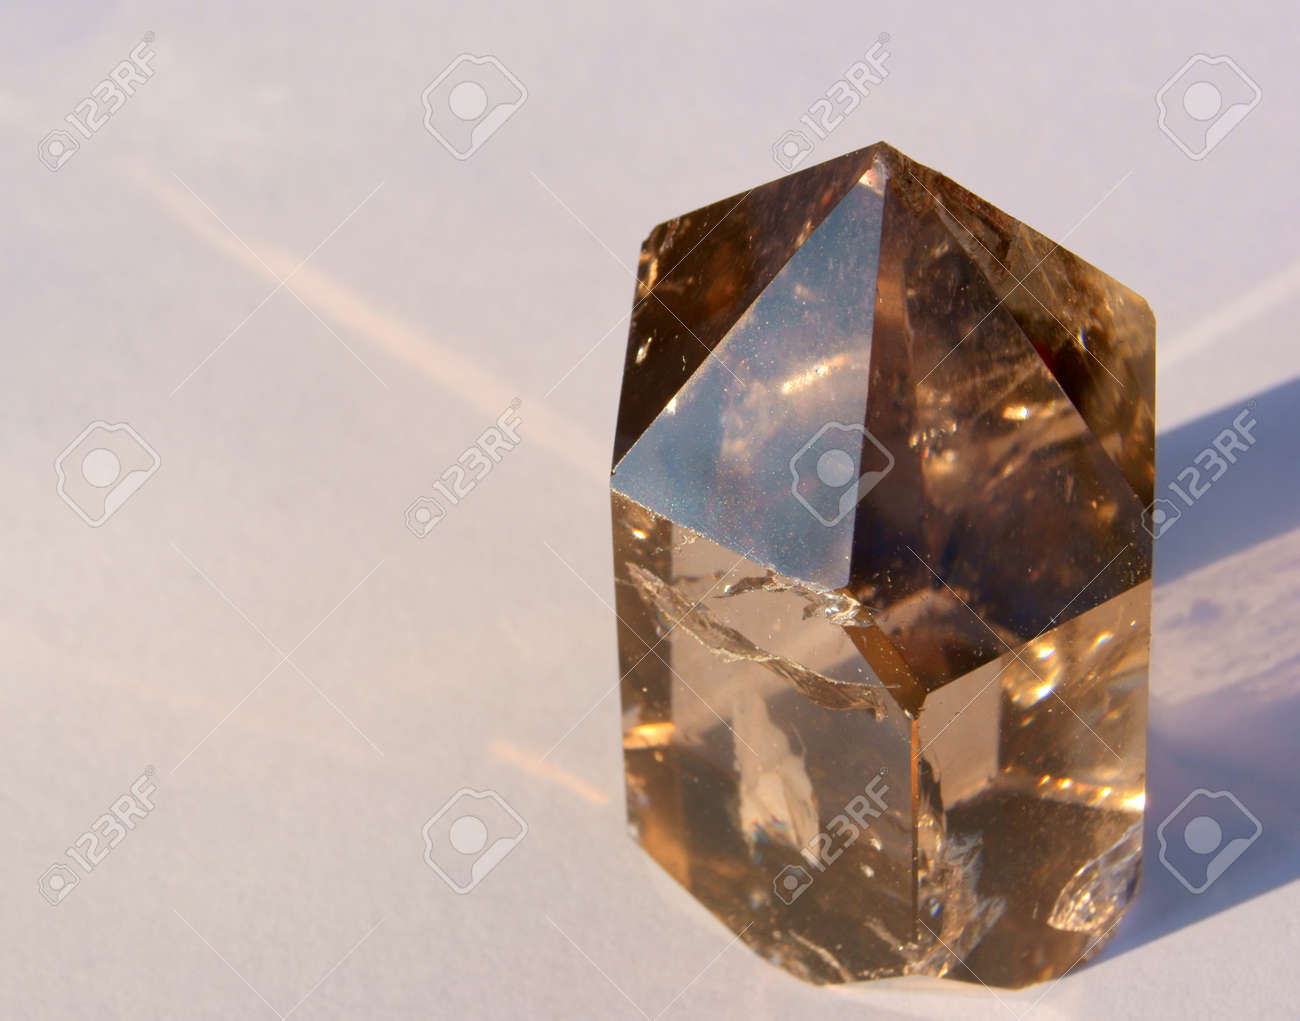 A Smoky Quartz Crystal from Hallelujah Junction, NV, USA Stock Photo - 18084238